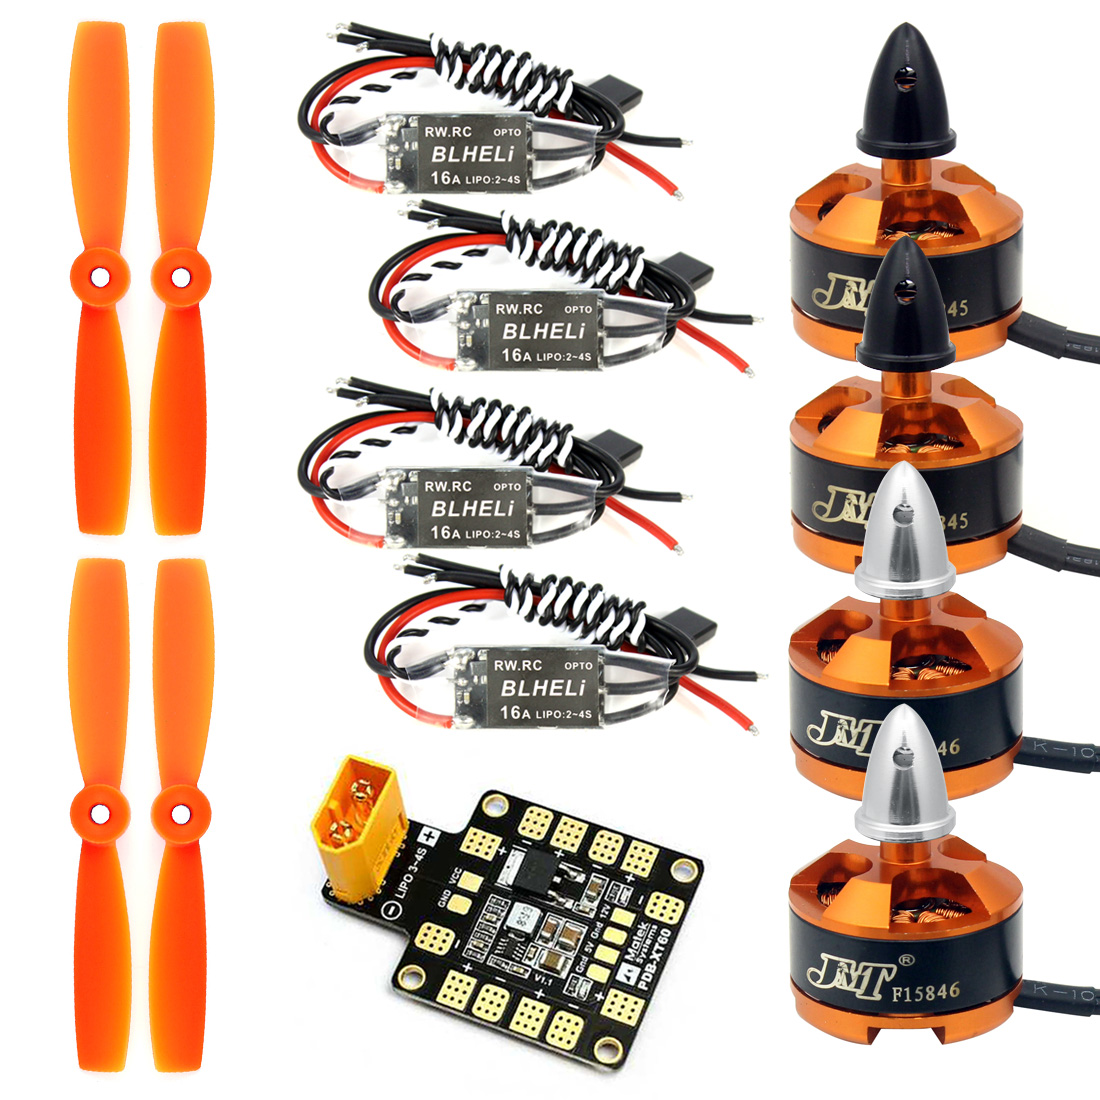 Racing Quadcopter 1806 2400KV Brushless Motor Mini BLHeli OPTO 16A ESC 5045 Propellers Paddles DIY for Mini 250 210 RC Drone FPV high quality fpv racing 6 inch propellers prop protectors guard for 250 quadcopter page 4 href